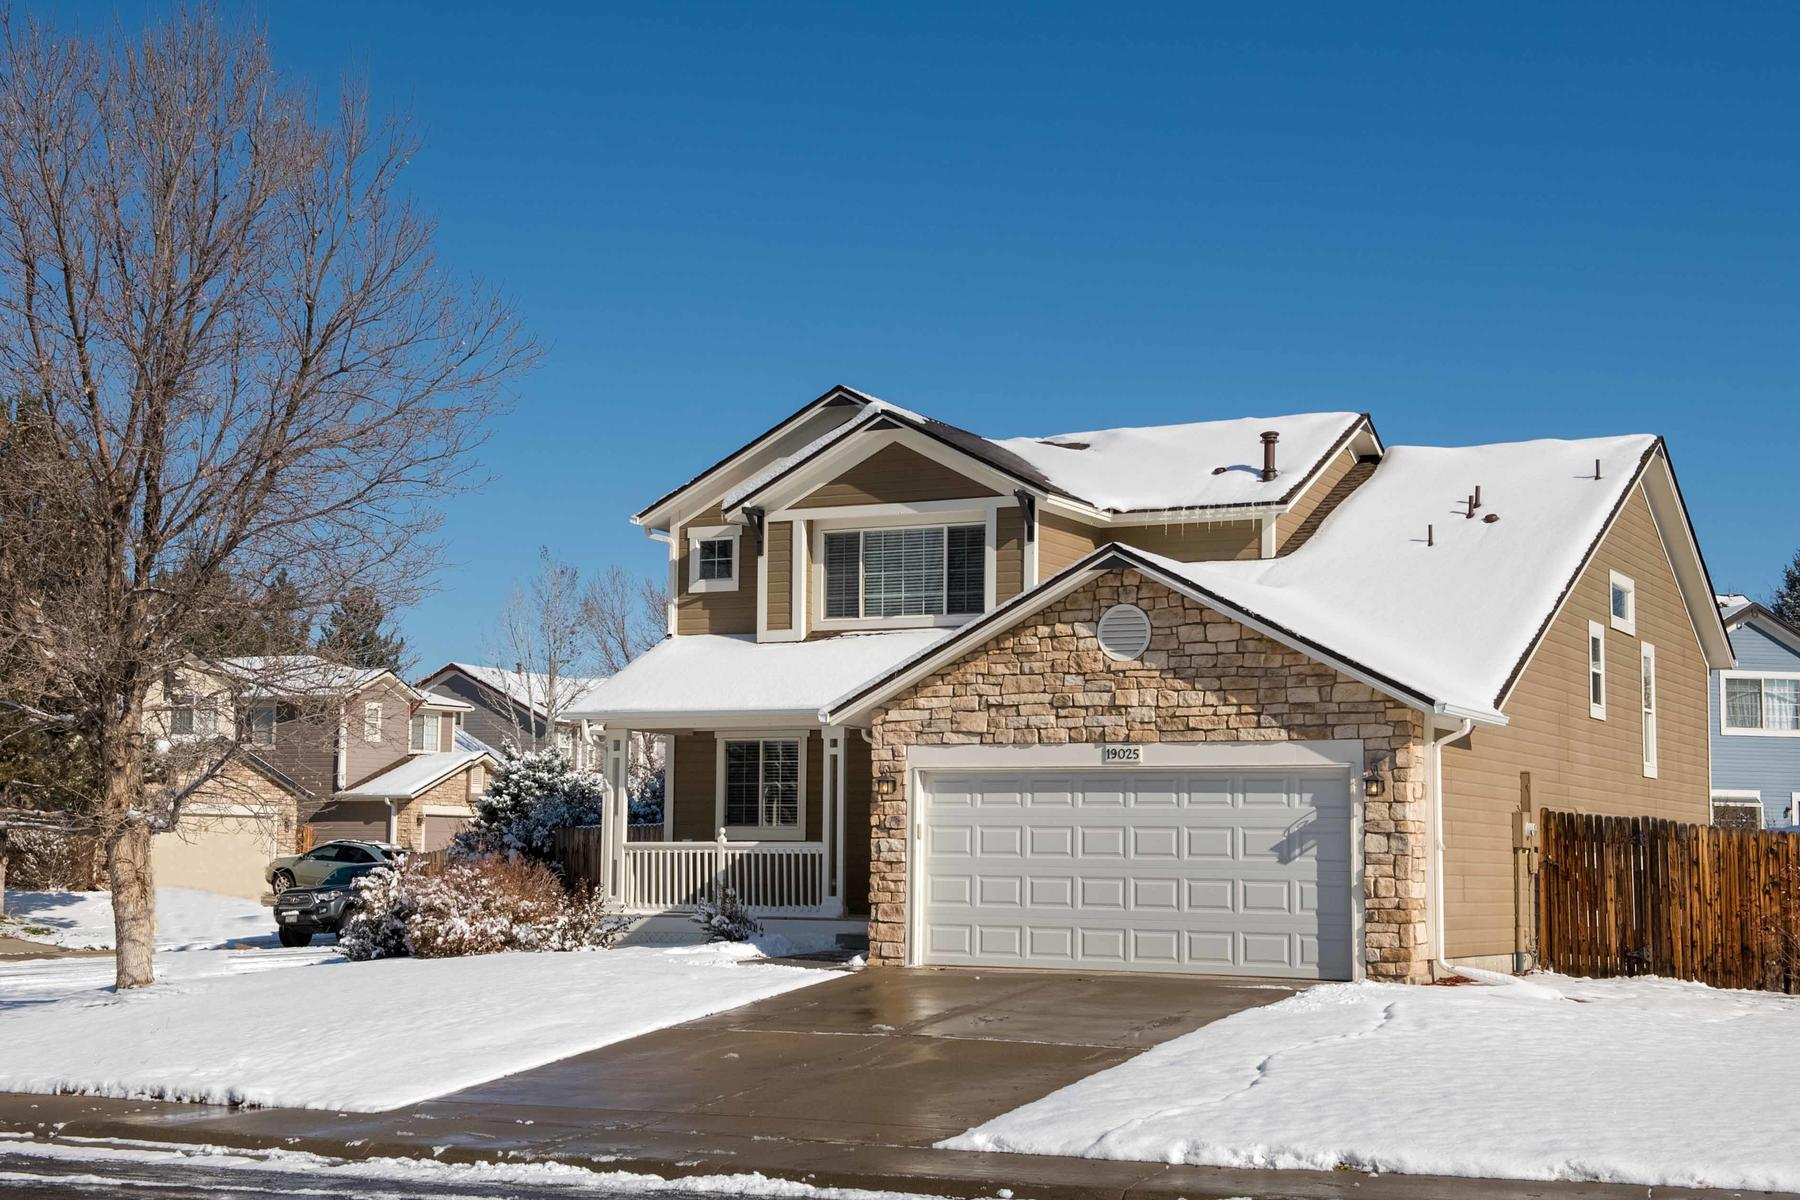 Property for Active at Awesome Home Pride's Crossing 19025 E Grand Cir Aurora, Colorado 80015 United States